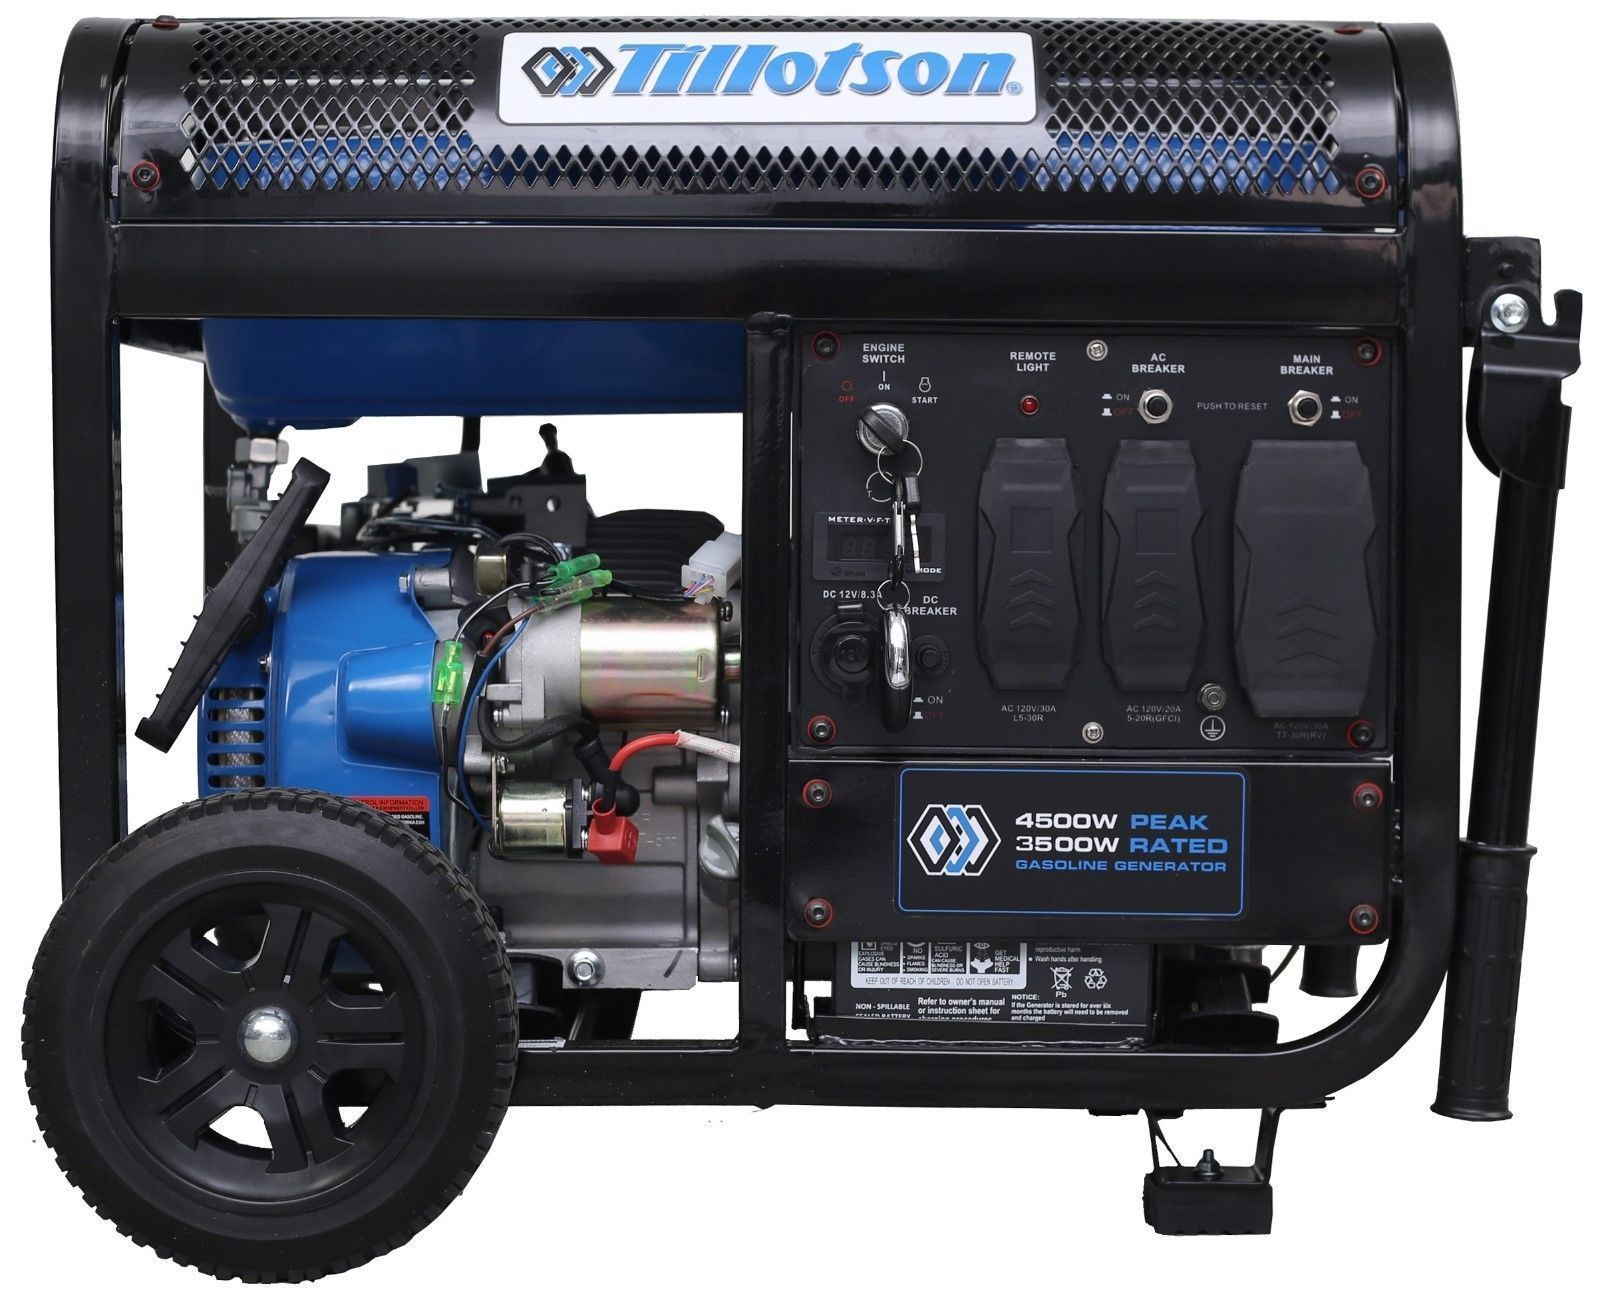 tillotson generator 4500 gasoline operated with remote control [ 1600 x 1300 Pixel ]